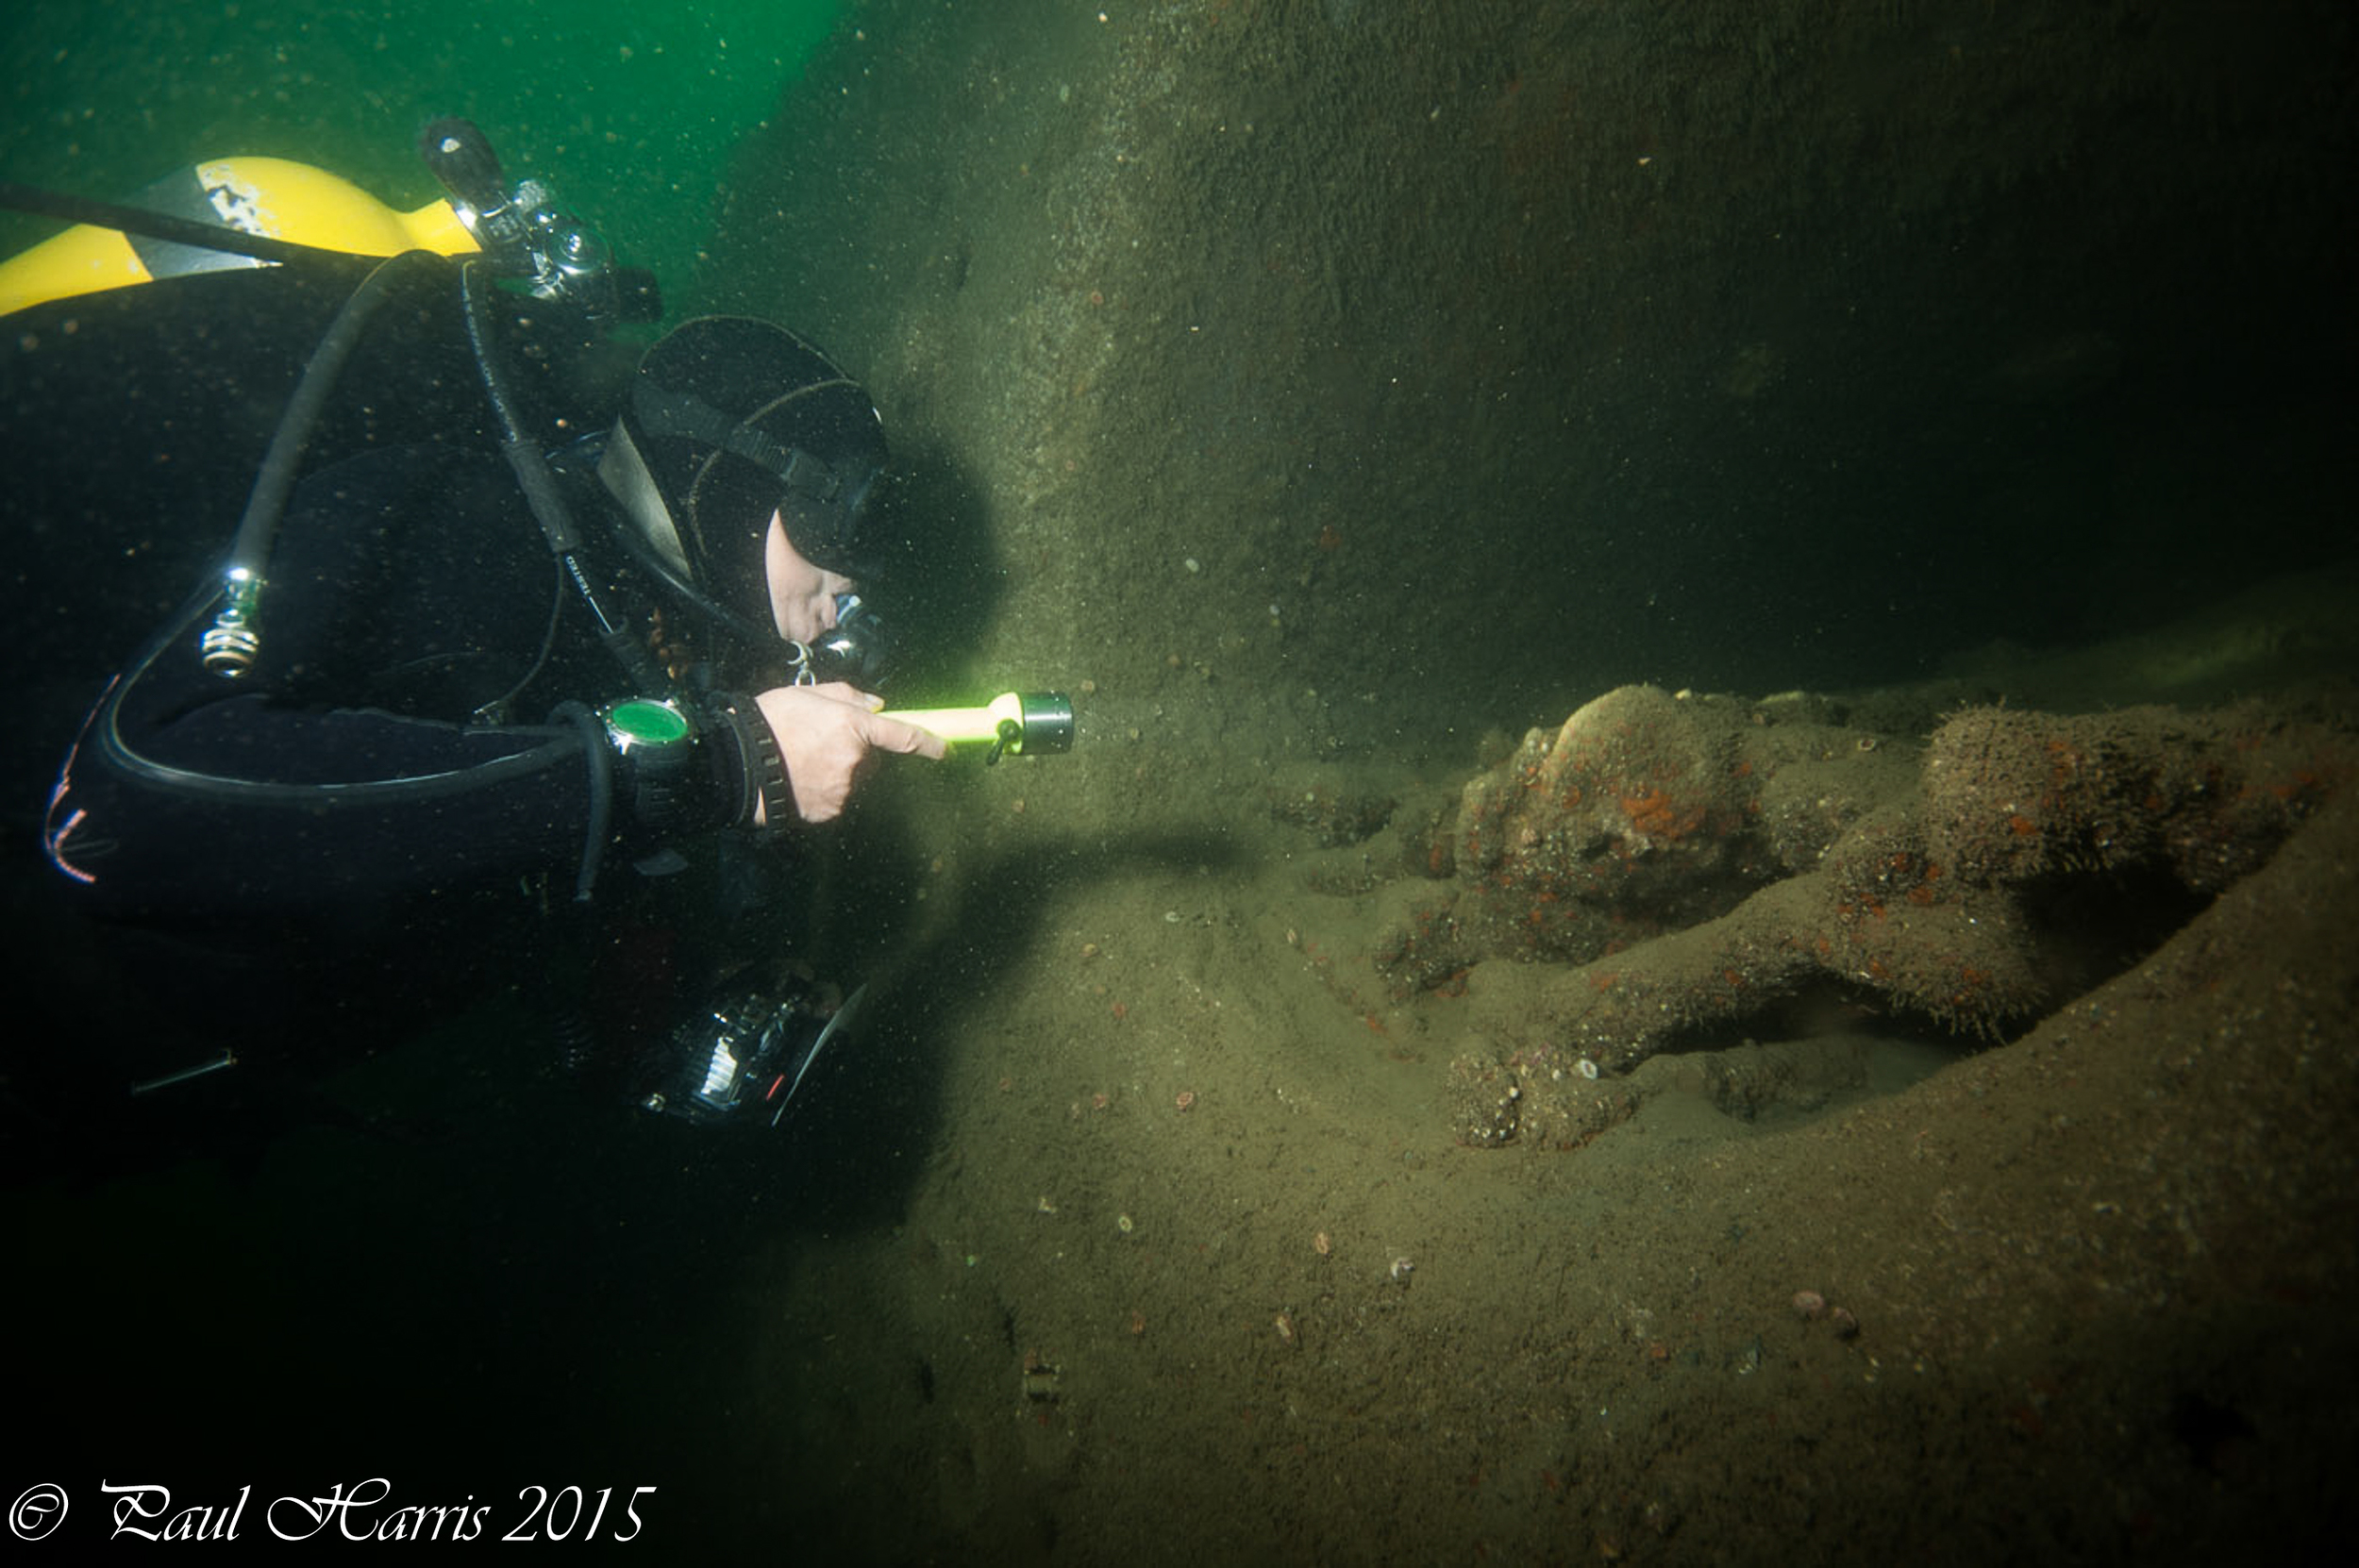 wreckage and diver_7155.jpg